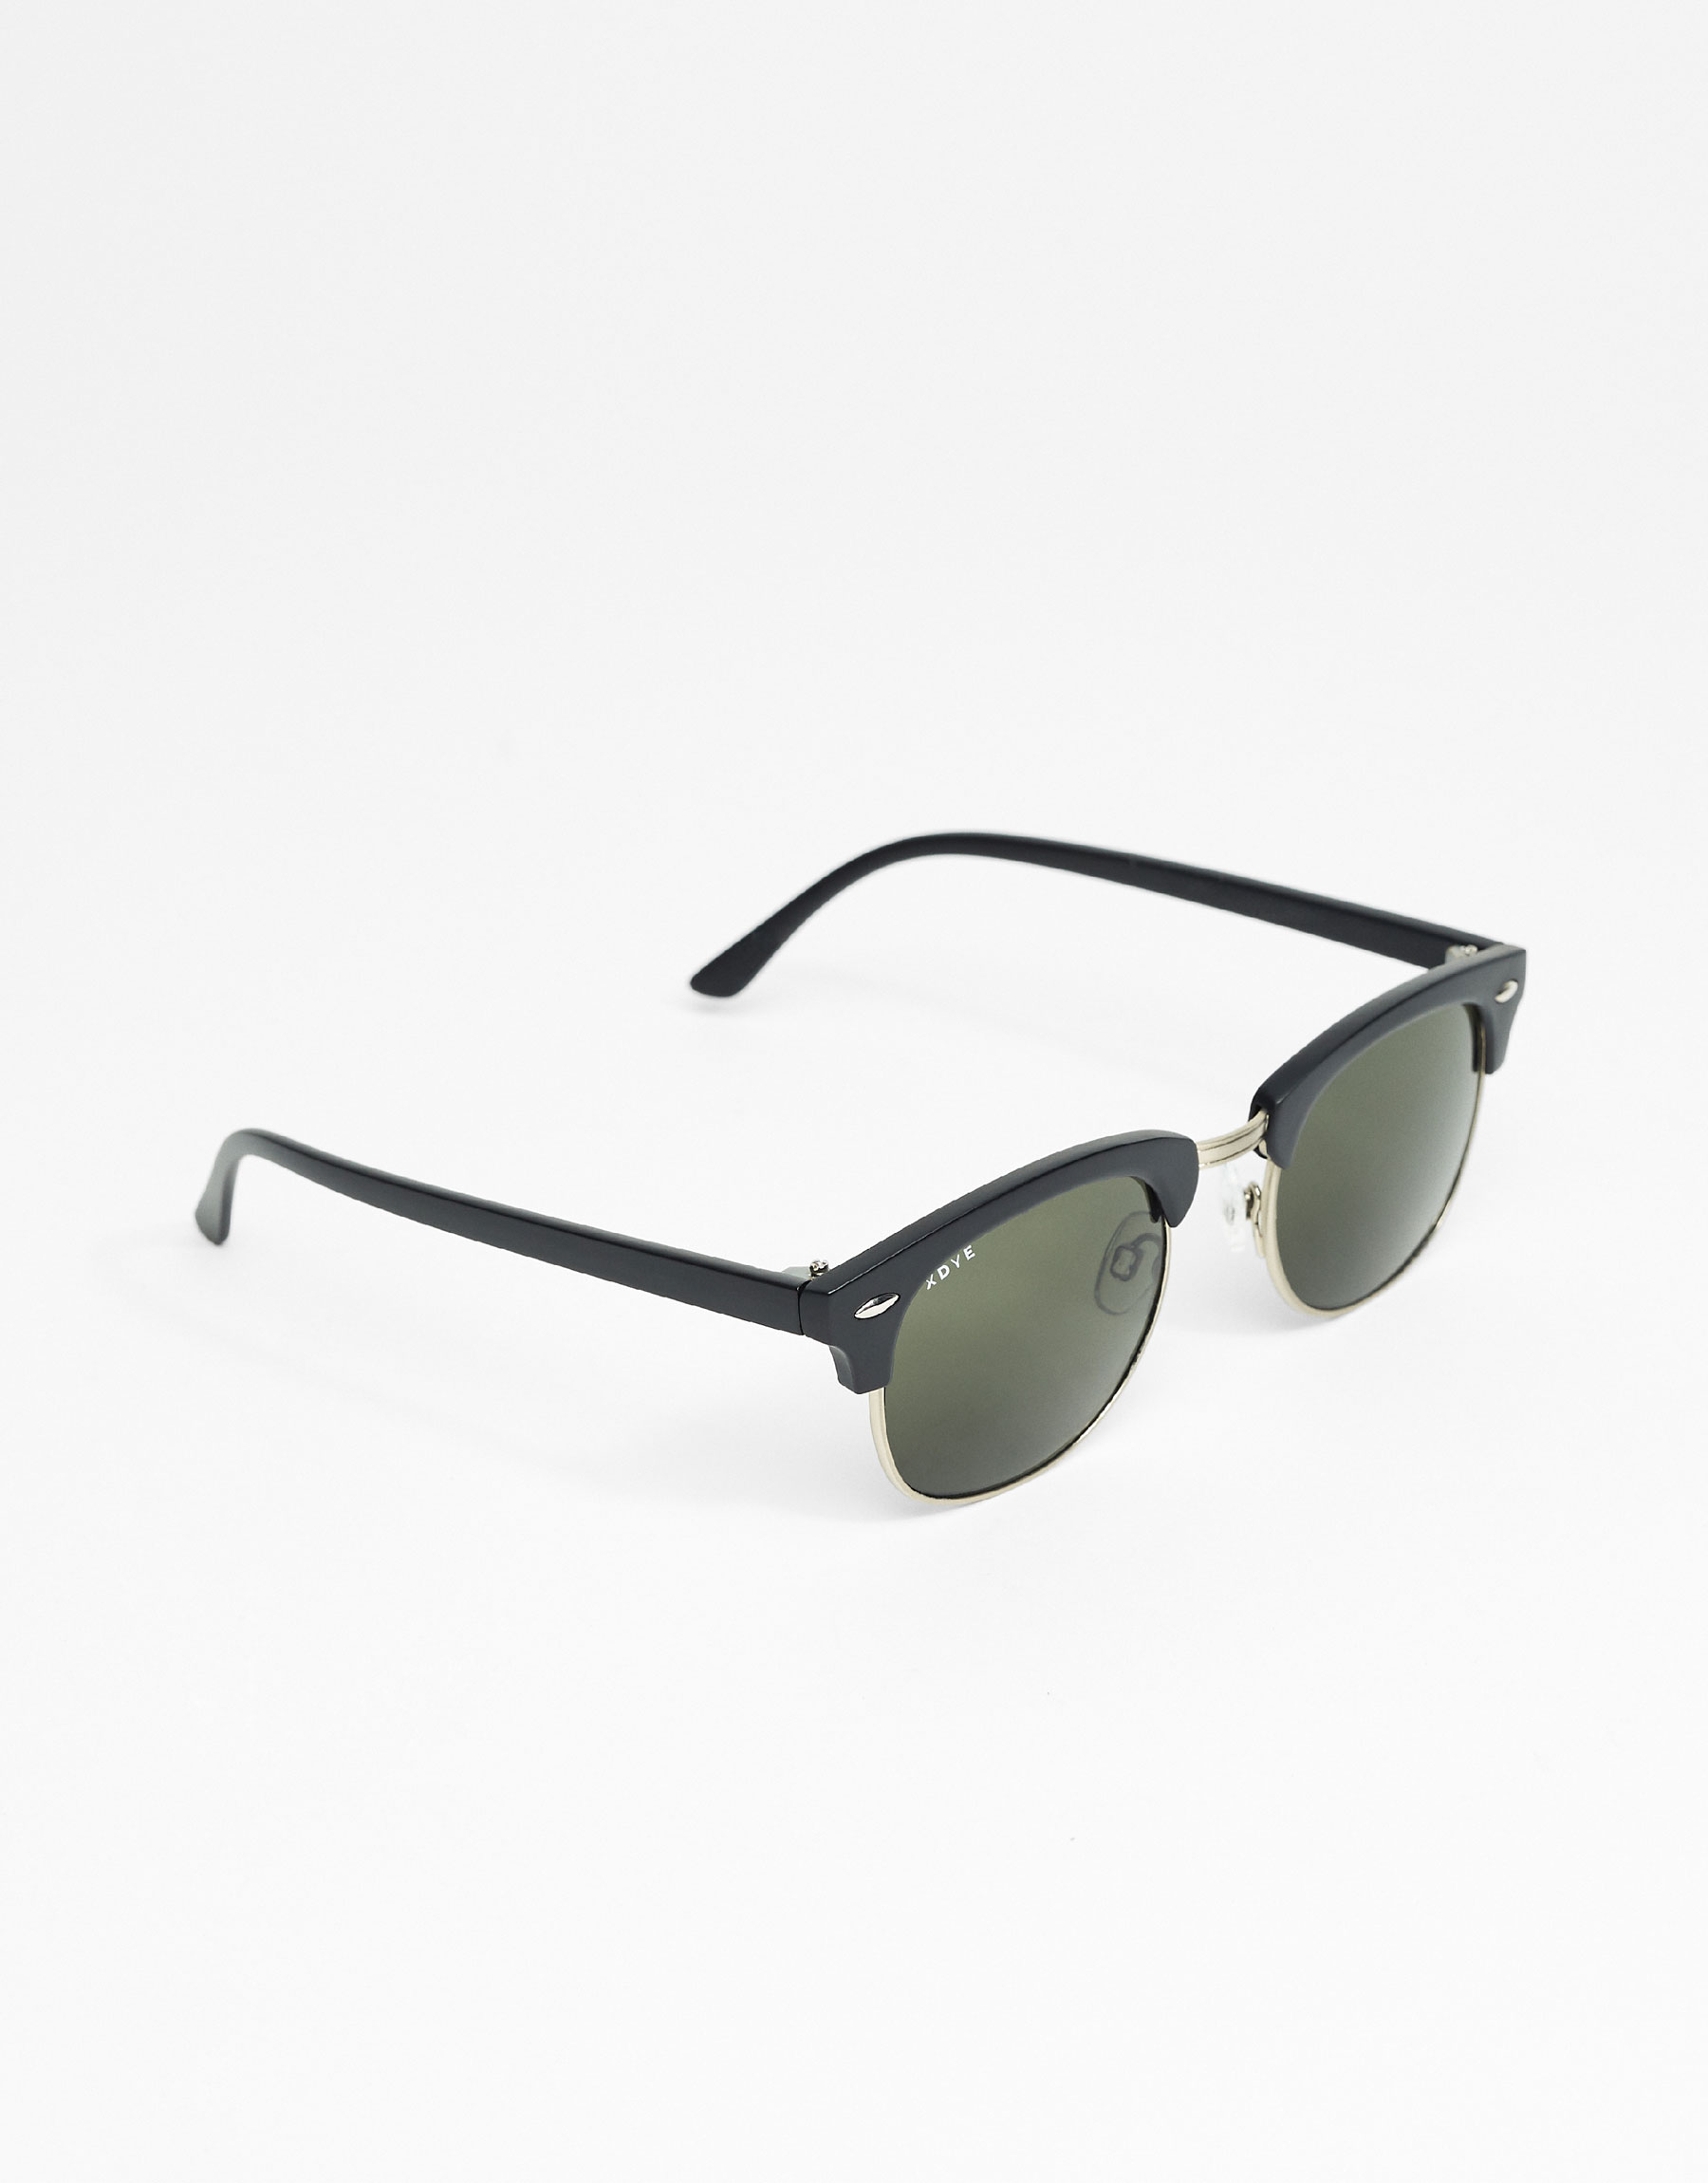 XDYE Sunglasses - Mister Black